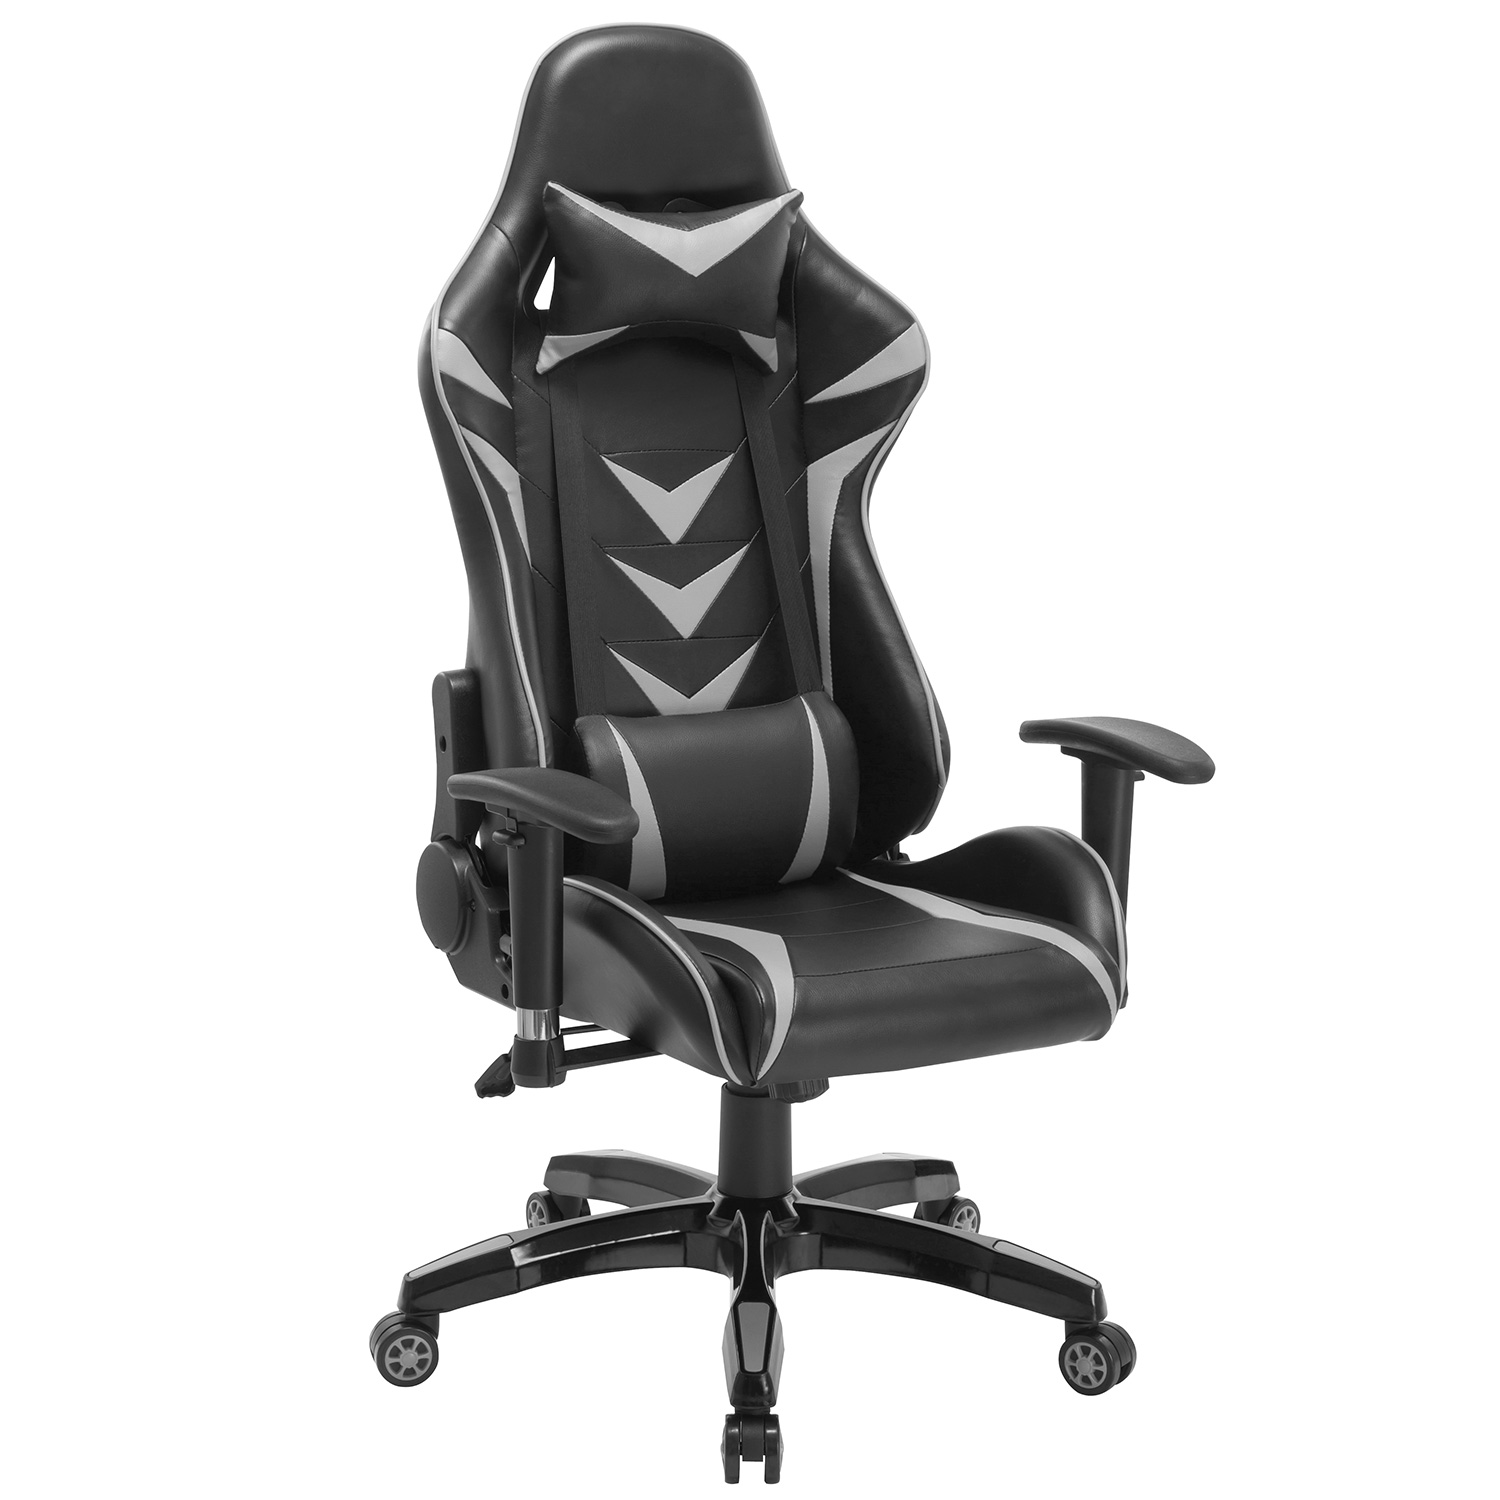 High-Back Swivel Gaming Chair Racing Ergonomic Office Desk Chair